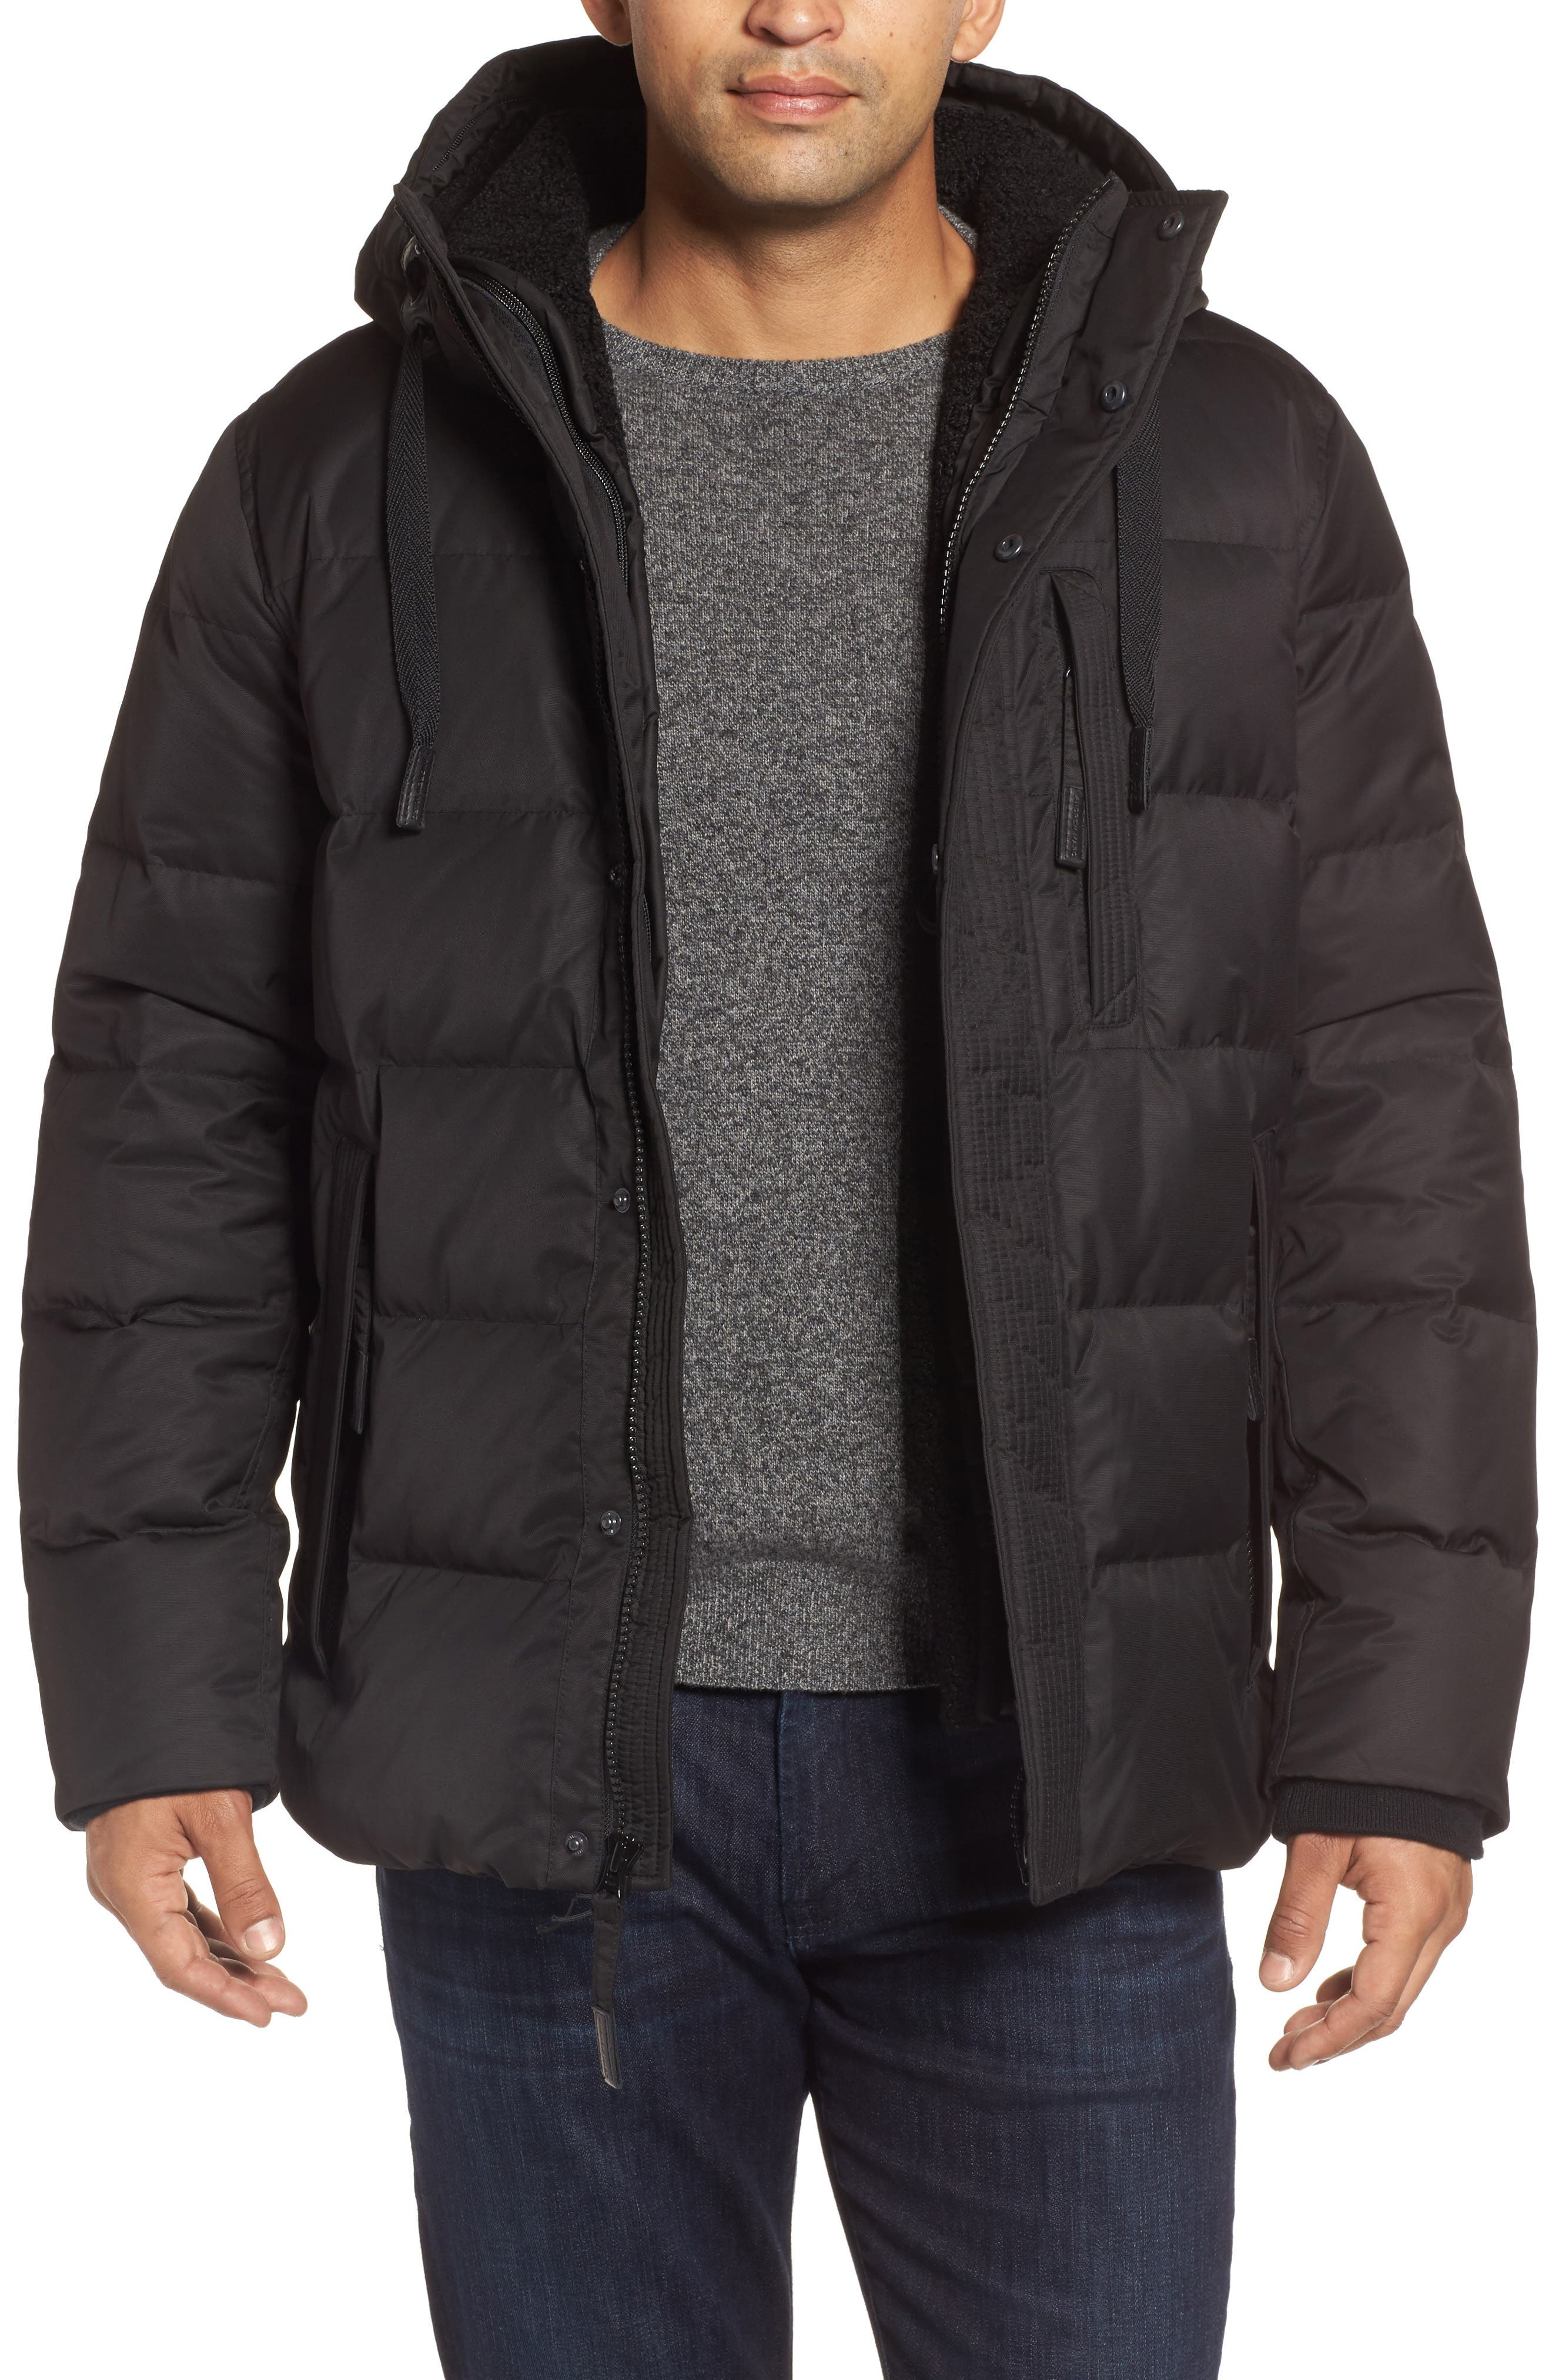 Andrew Marc Groton Slim Down Jacket with Faux Shearling Lining